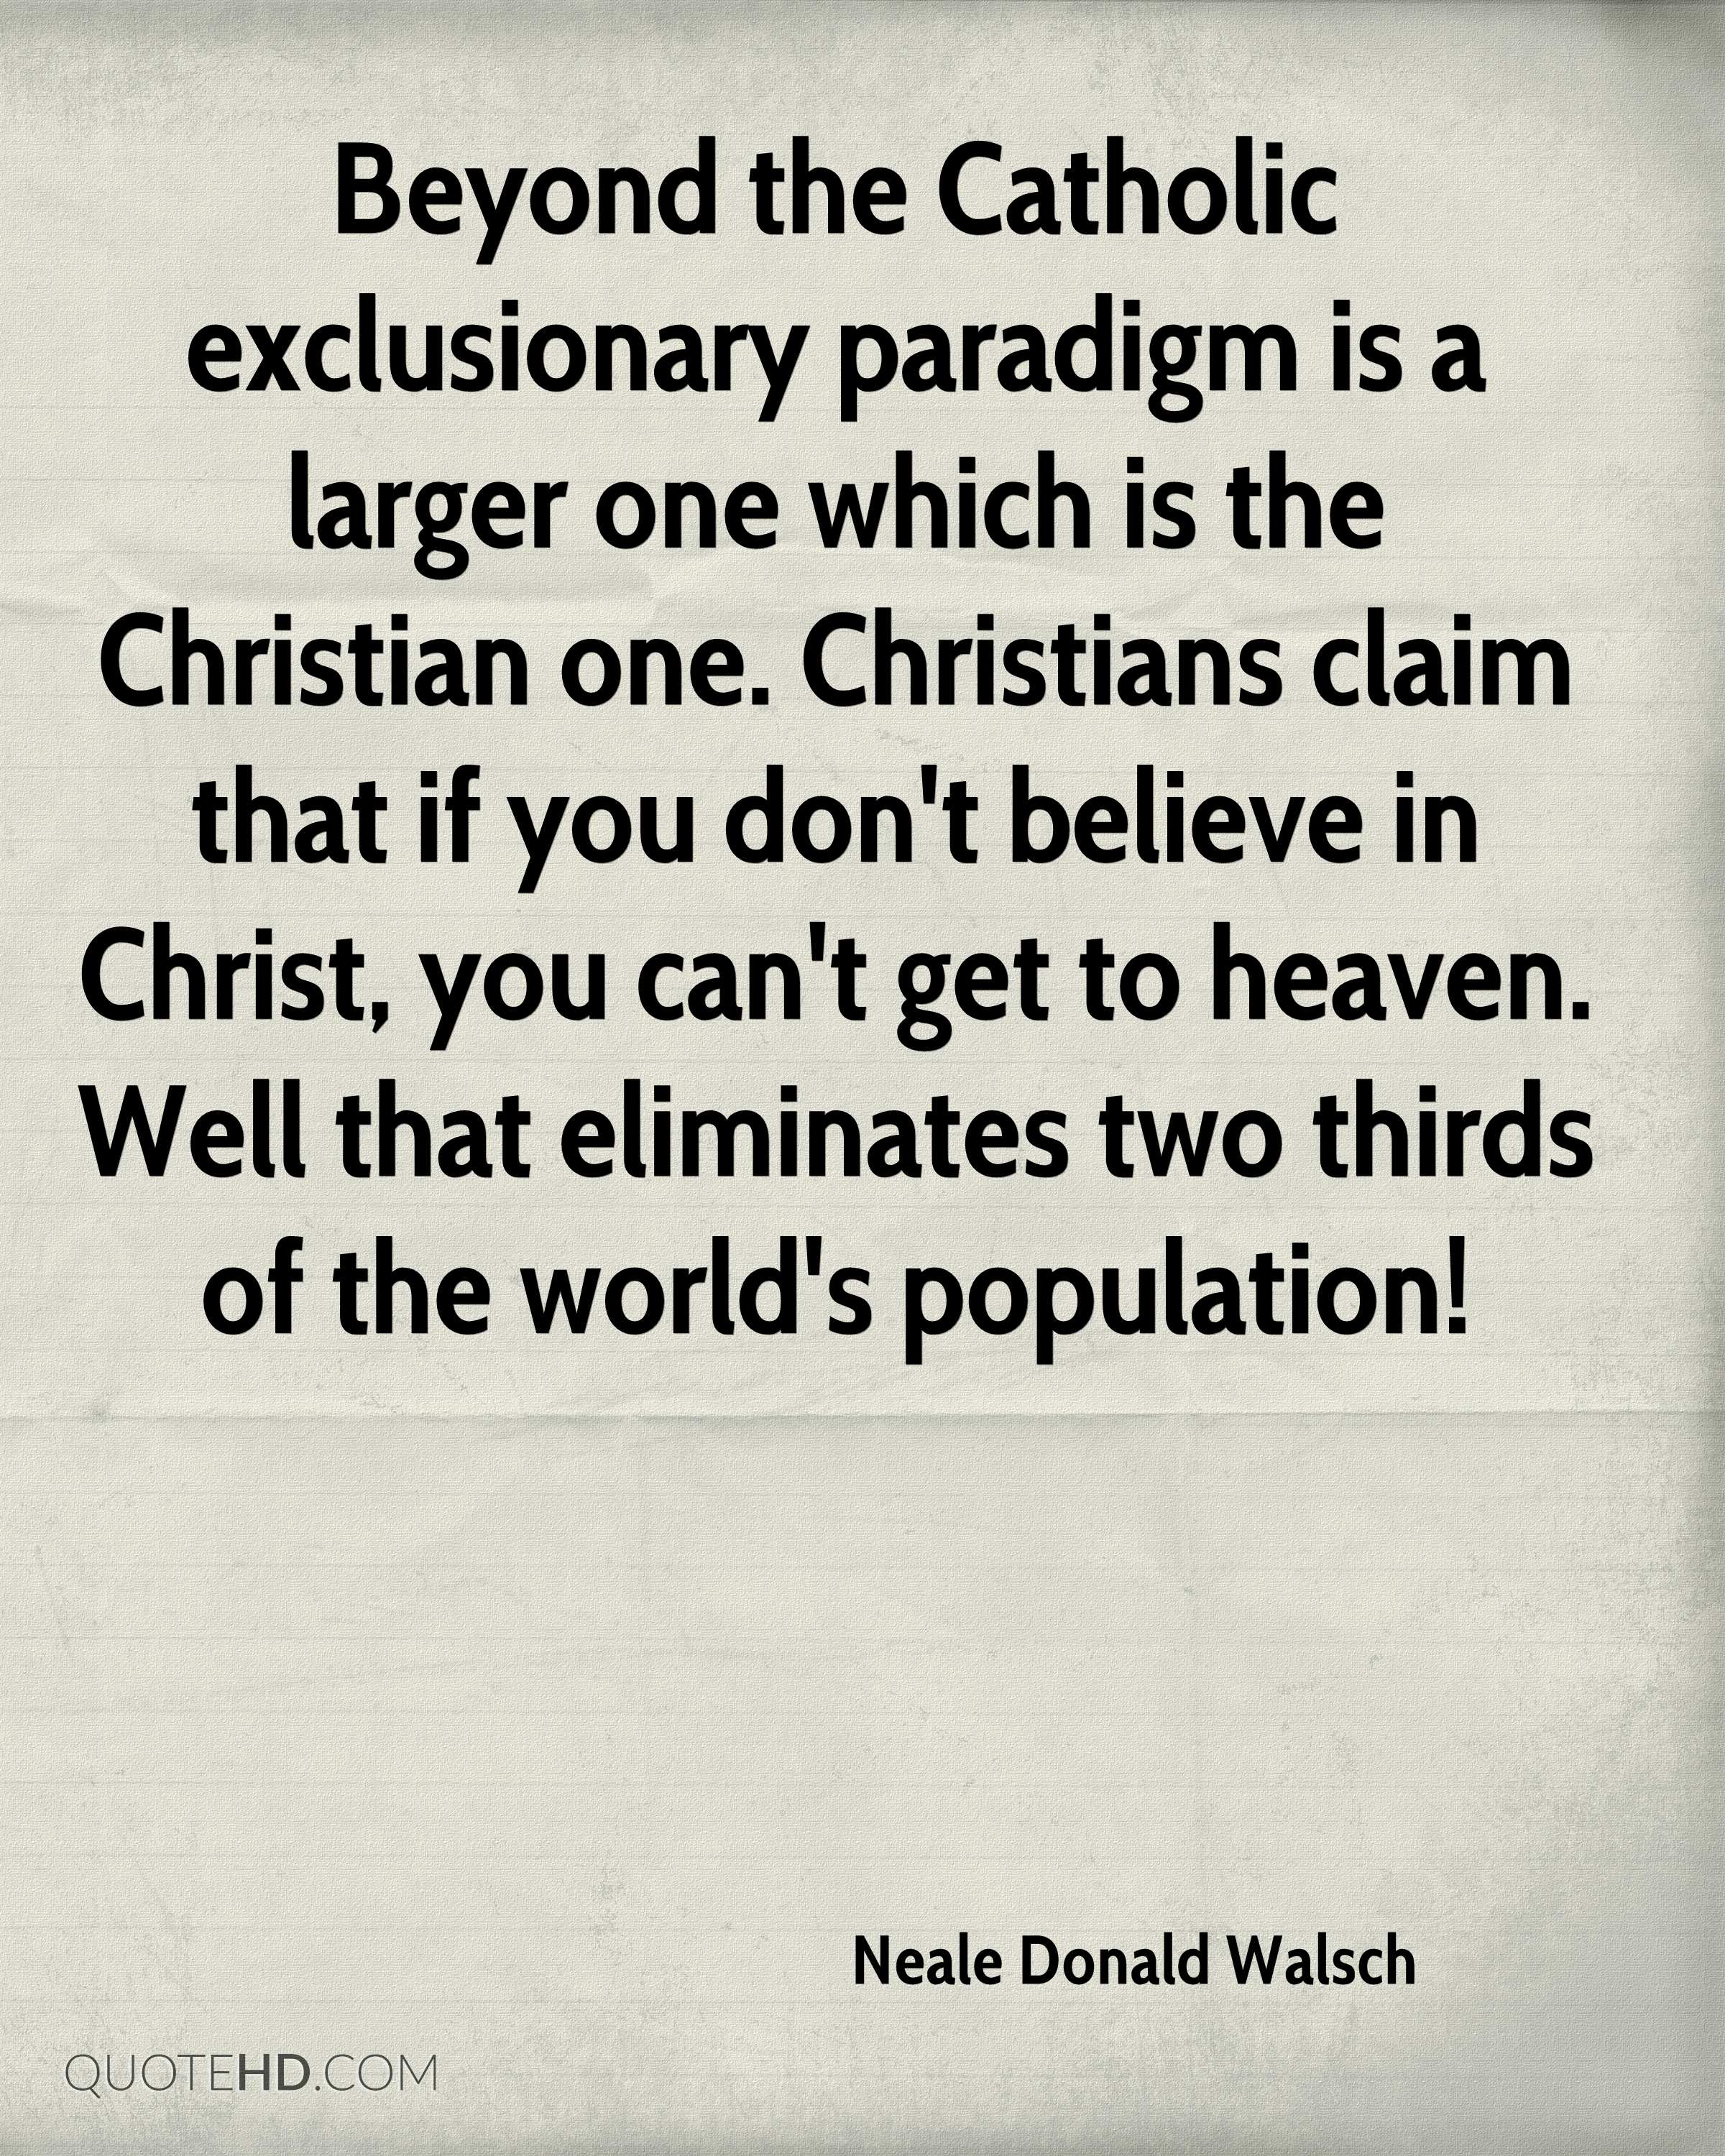 Beyond the Catholic exclusionary paradigm is a larger one which is the Christian one. Christians claim that if you don't believe in Christ, you can't get to heaven. Well that eliminates two thirds of the world's population!